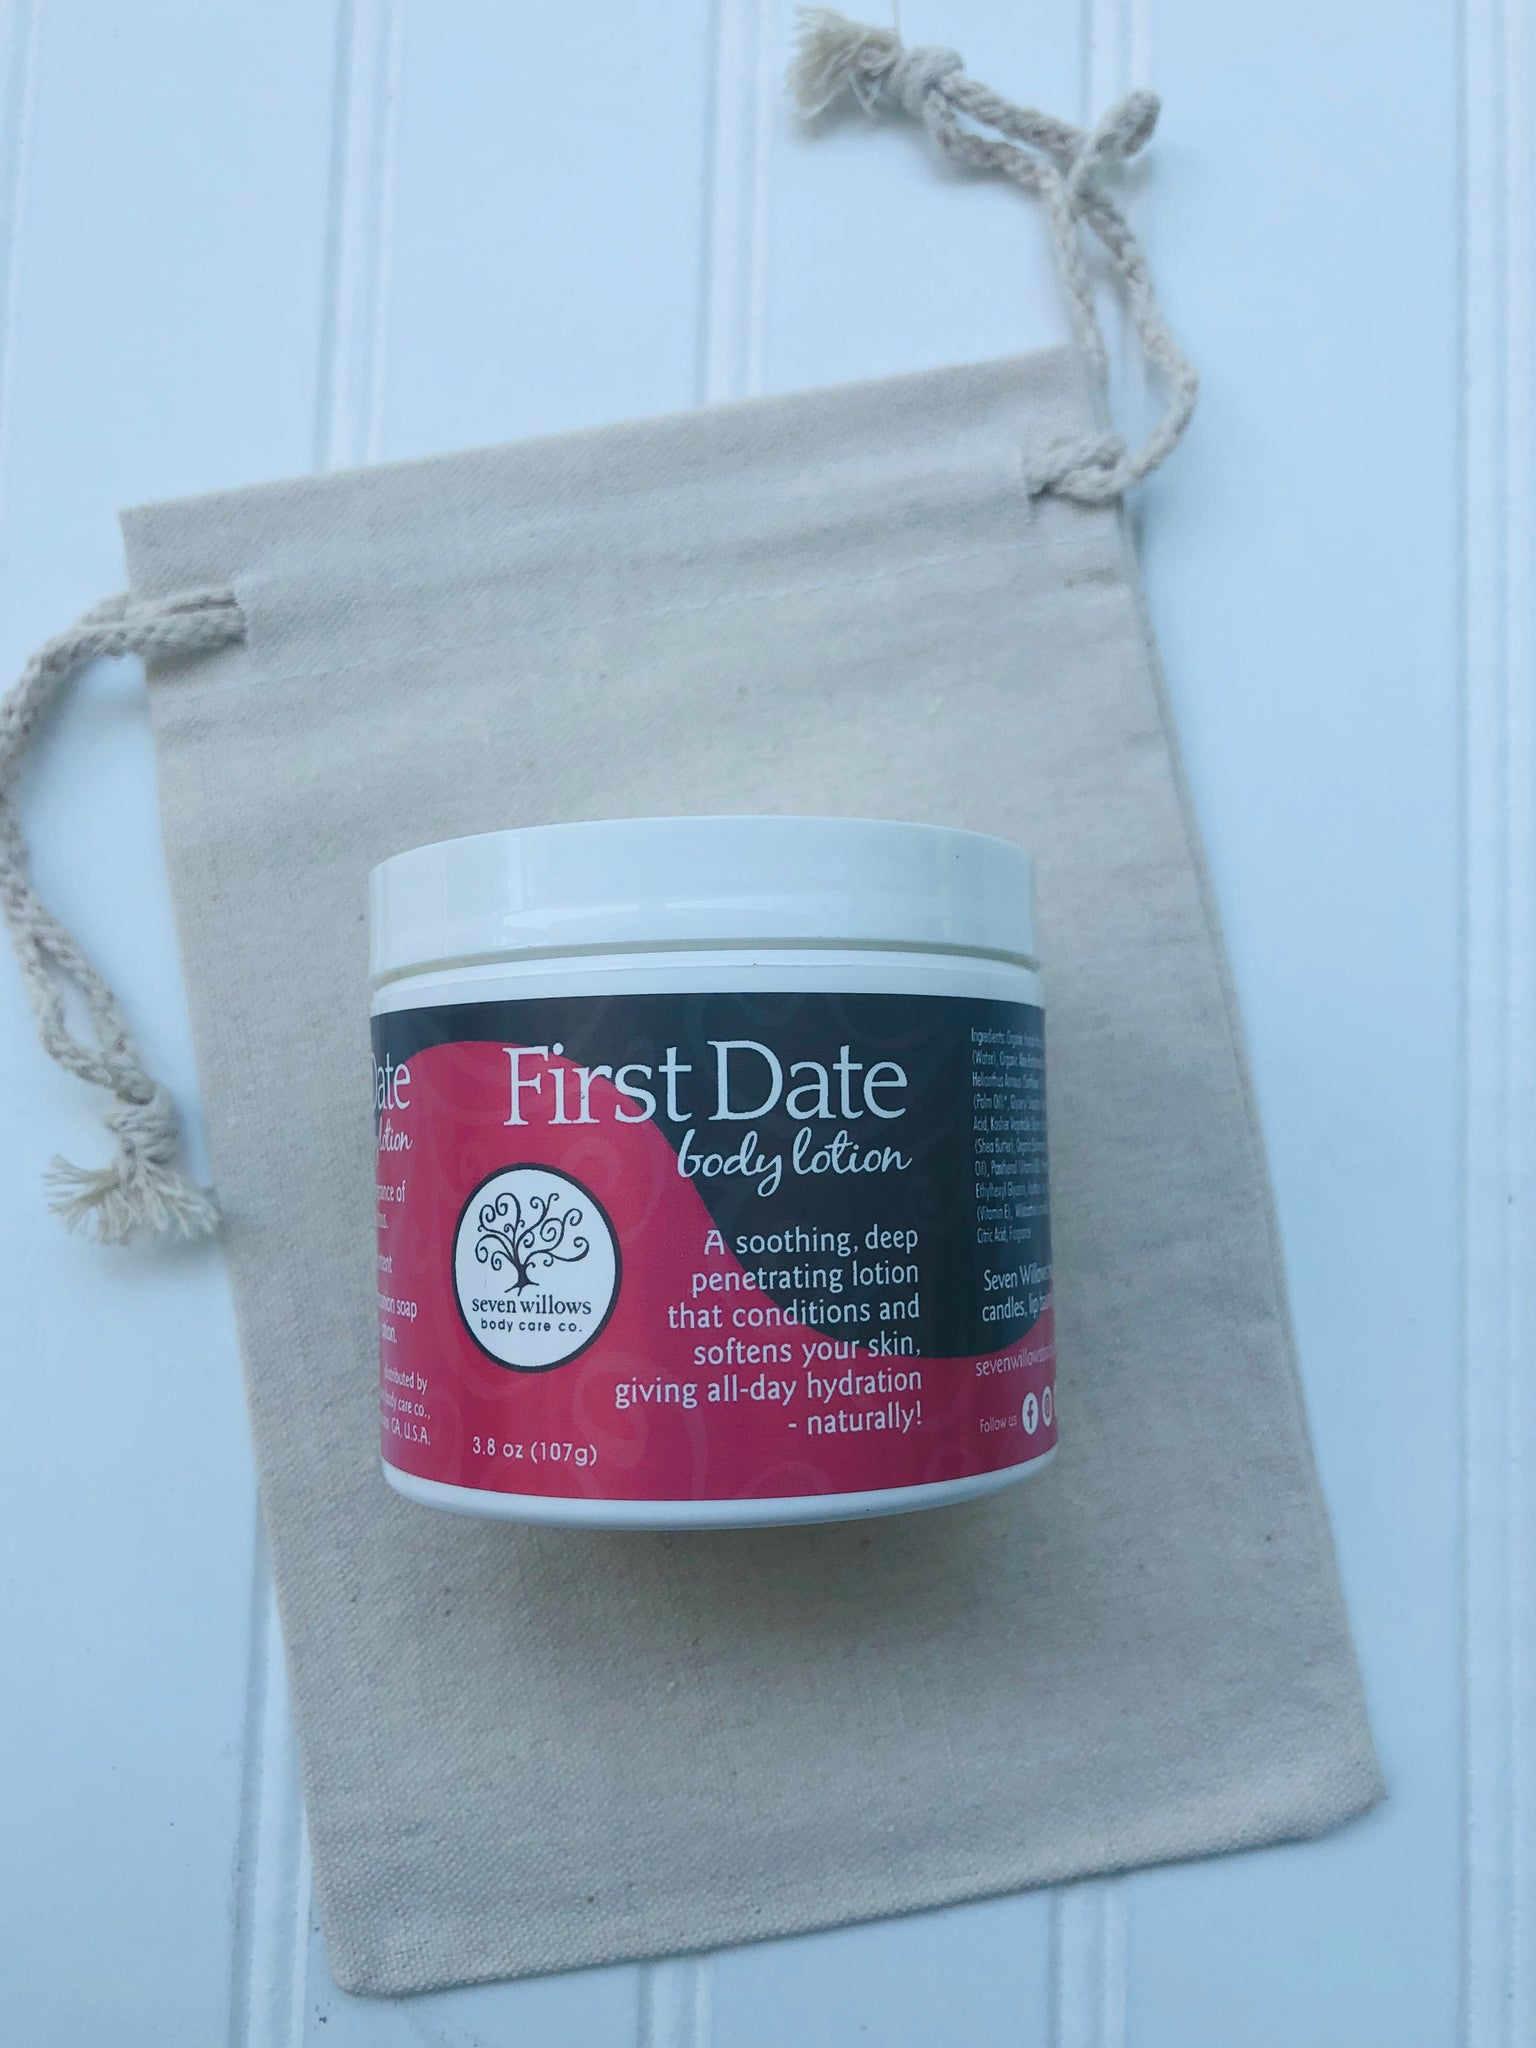 First Date body lotion